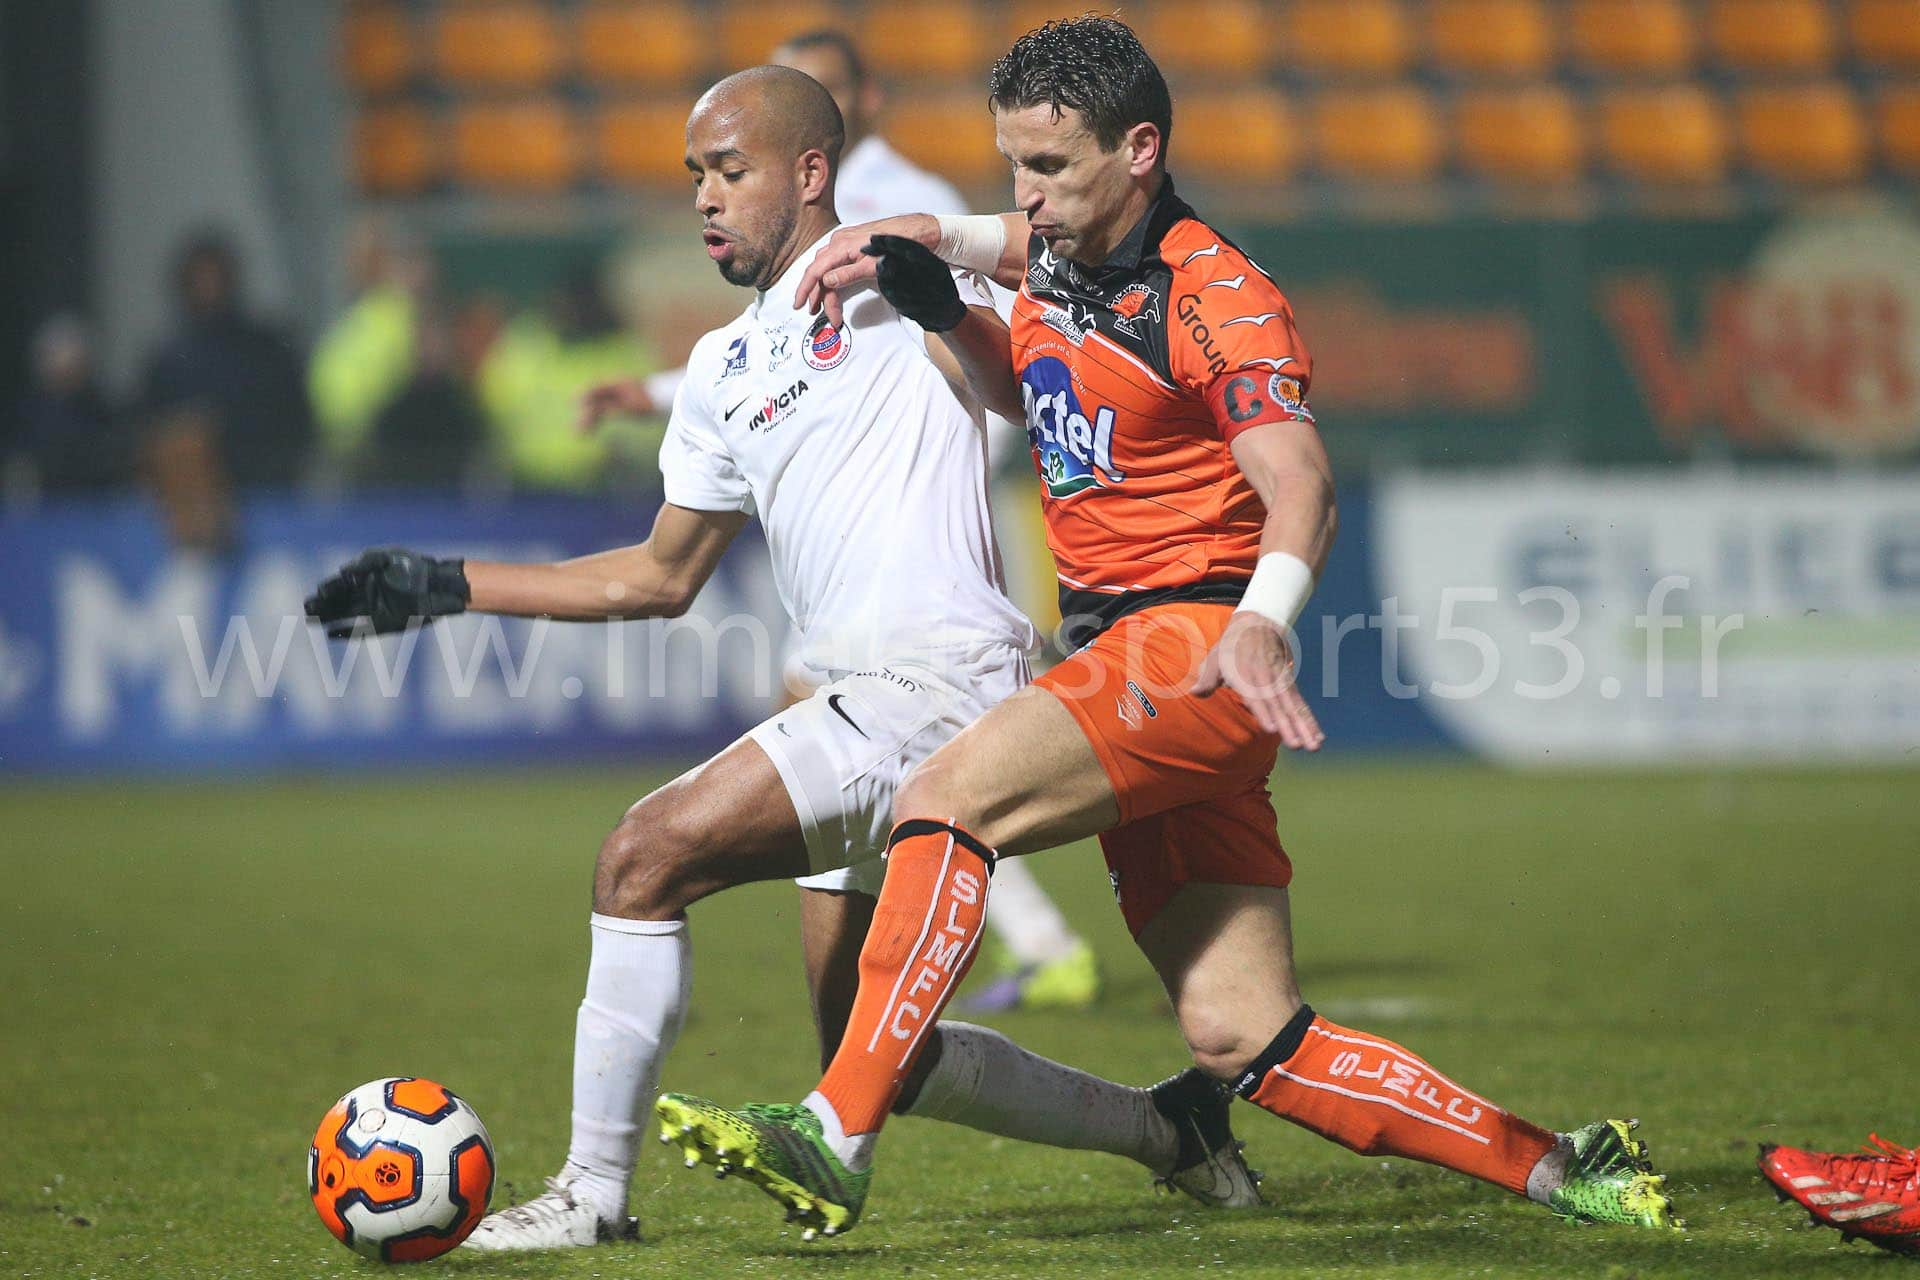 NG_1314_Ligue2_J17_-Laval-Chateauroux_20